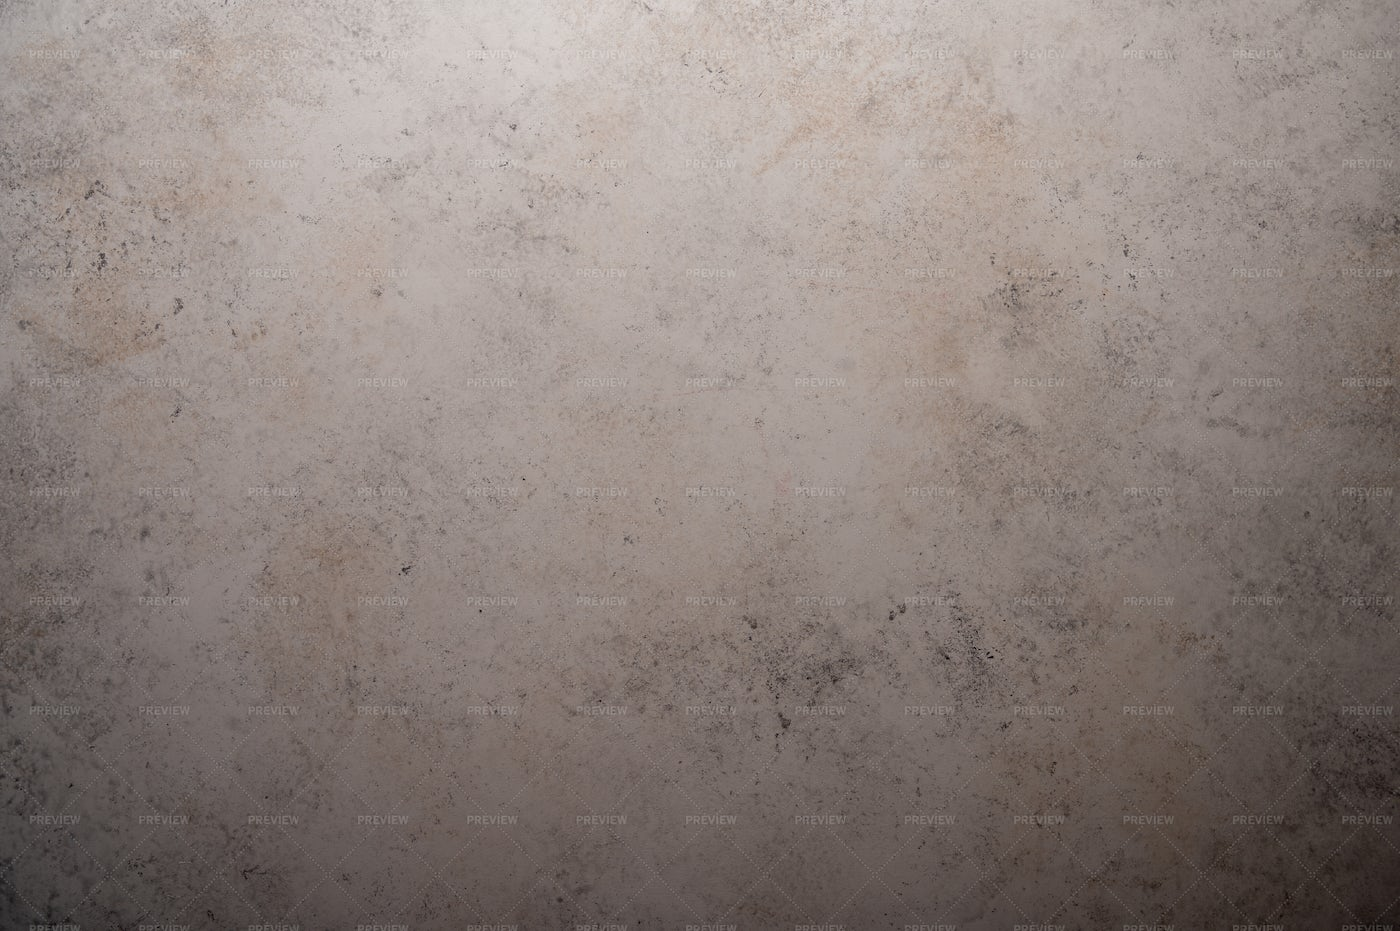 Gray Background With Dark Inclusions: Stock Photos